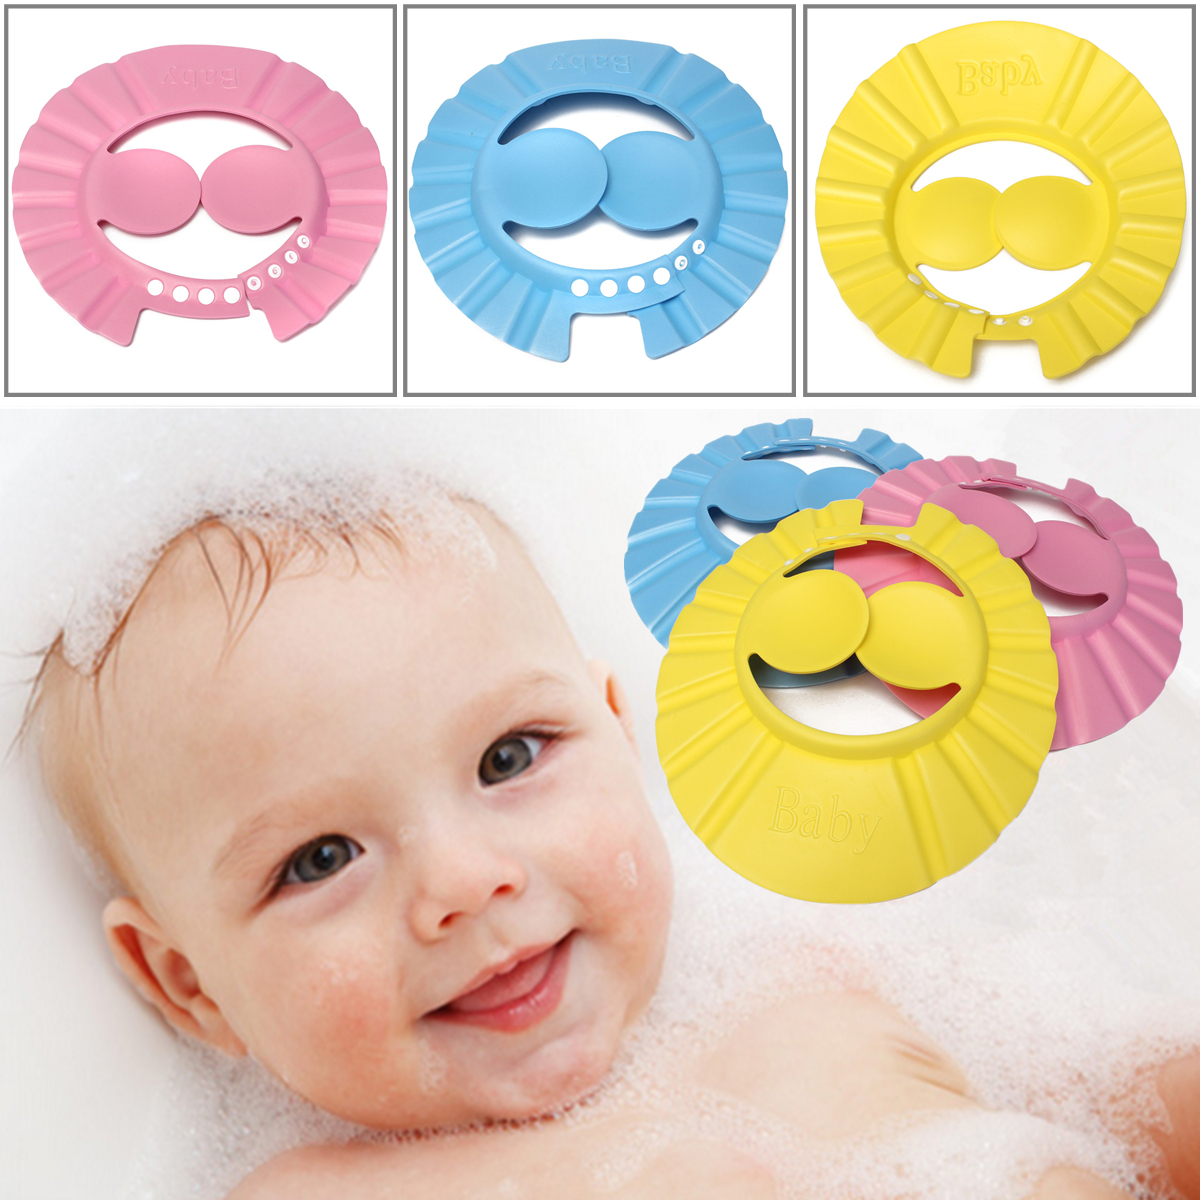 Soft Adjustable Baby Shower Cap Protect Children Kid Shampoo Bath Wash Hair Shield Hat Waterproof Prevent Water Into Ear